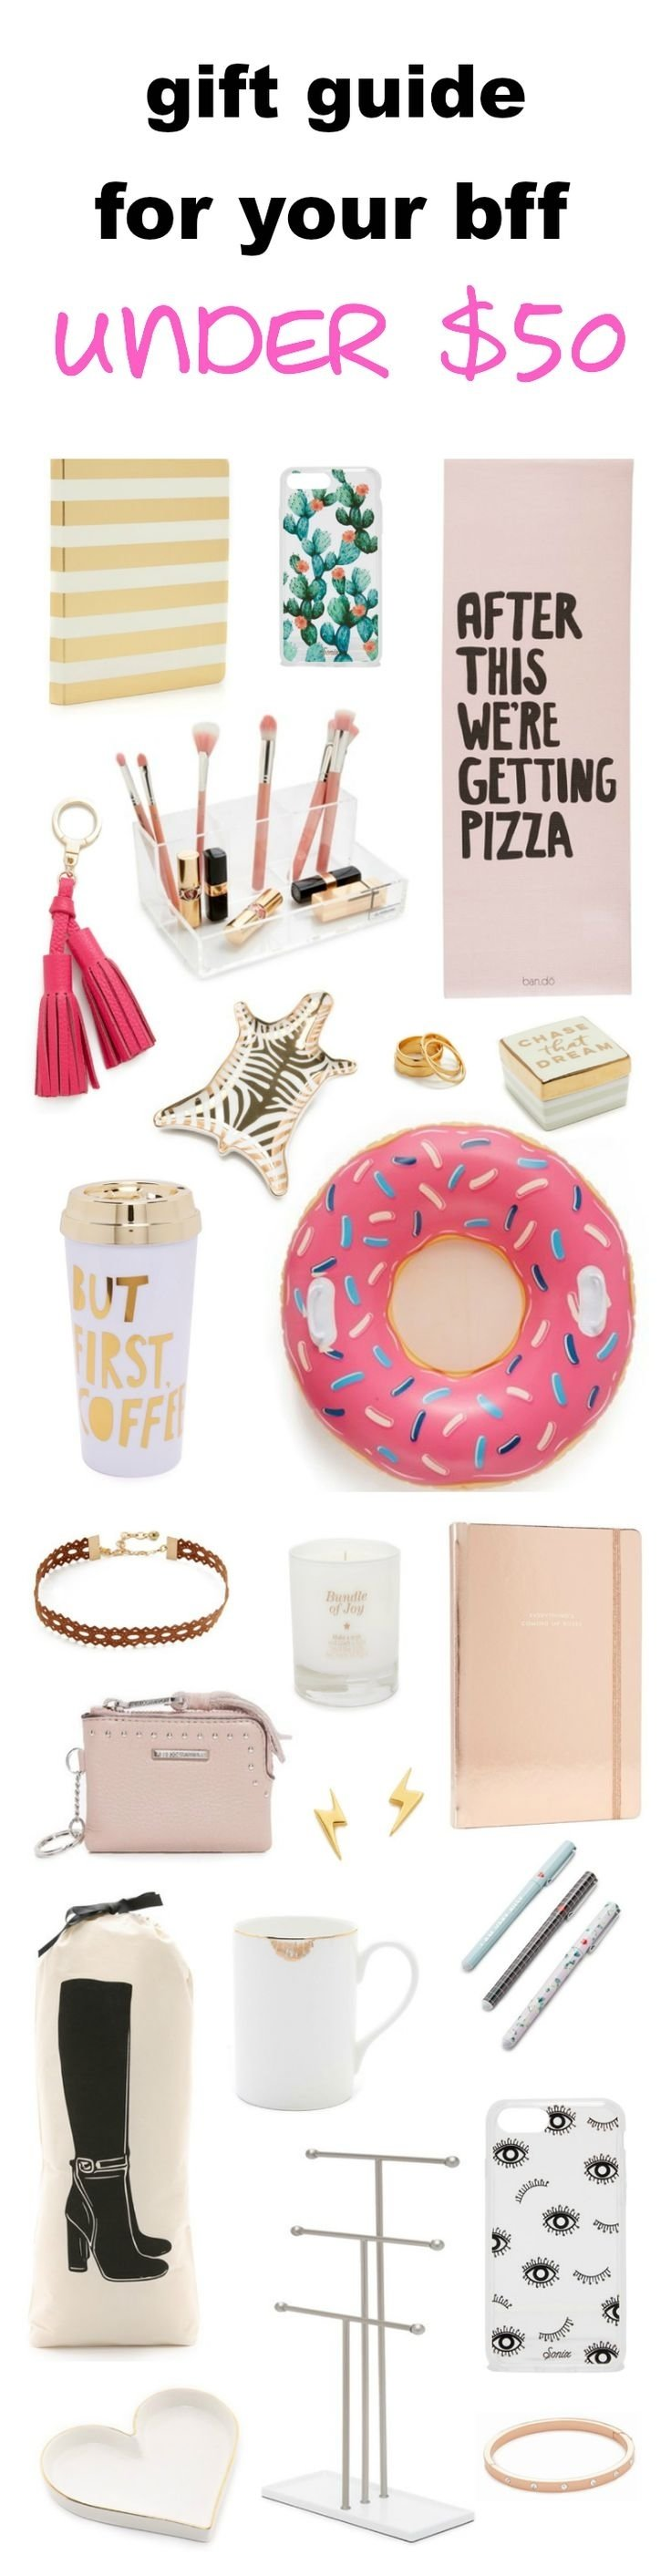 10 Fashionable Gift Ideas For Female Friends 331 best gift ideas for her images on pinterest debutante fashion 2020